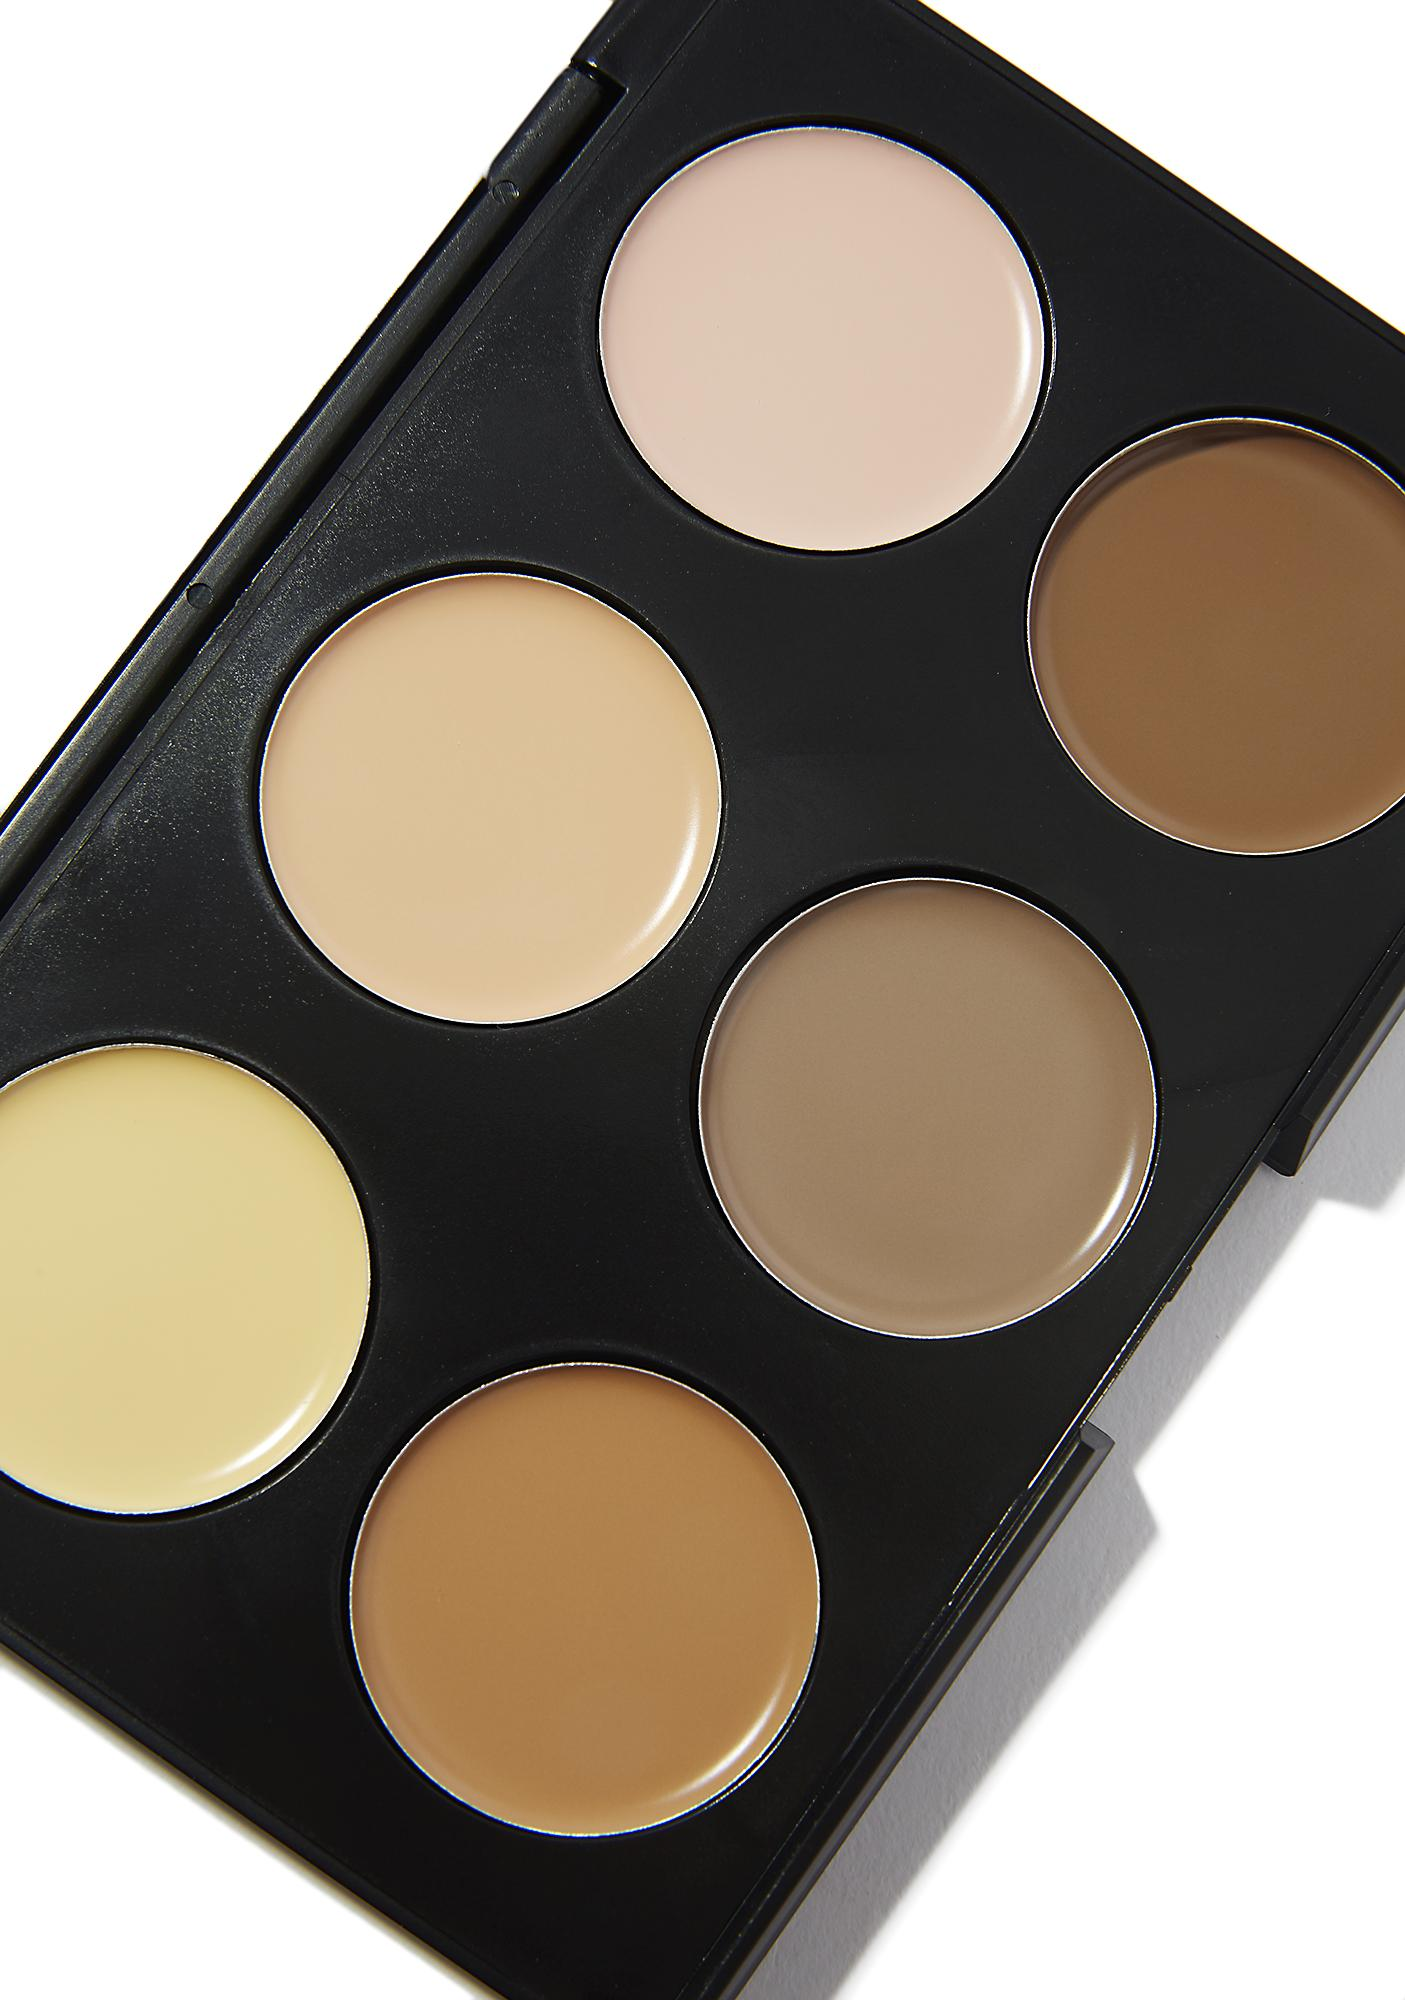 Australis Cool Cream Contour Kit